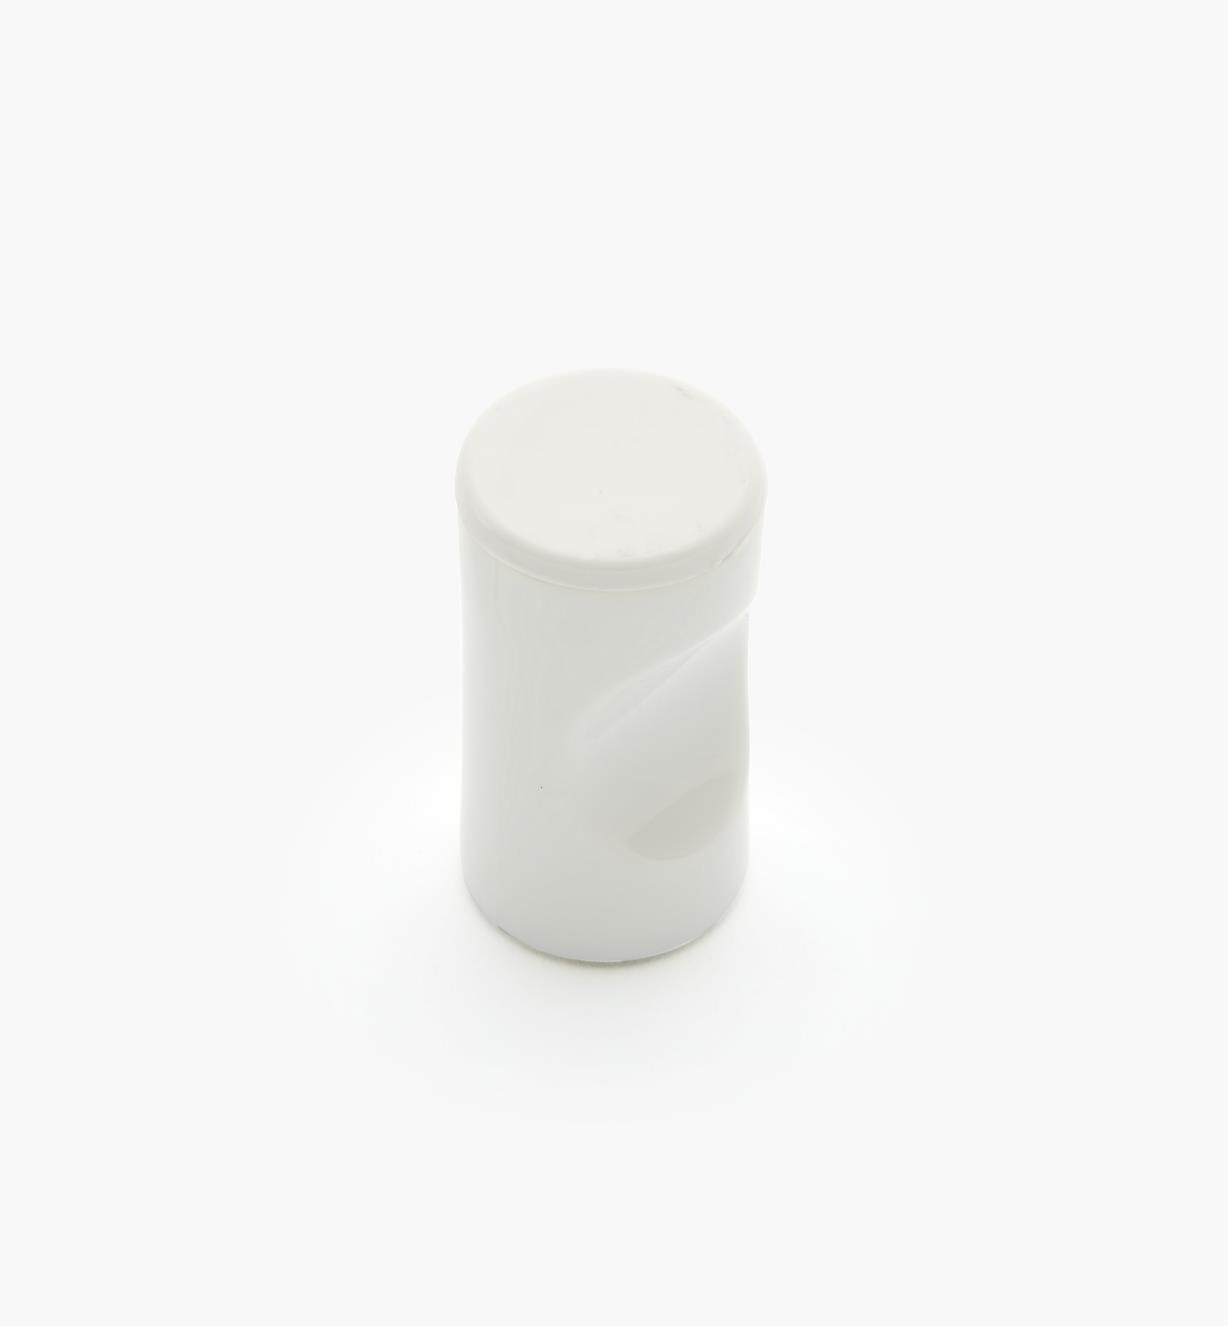 "01W4512 - 13mm x 1 1/8"" White Notched Pull/Knob"